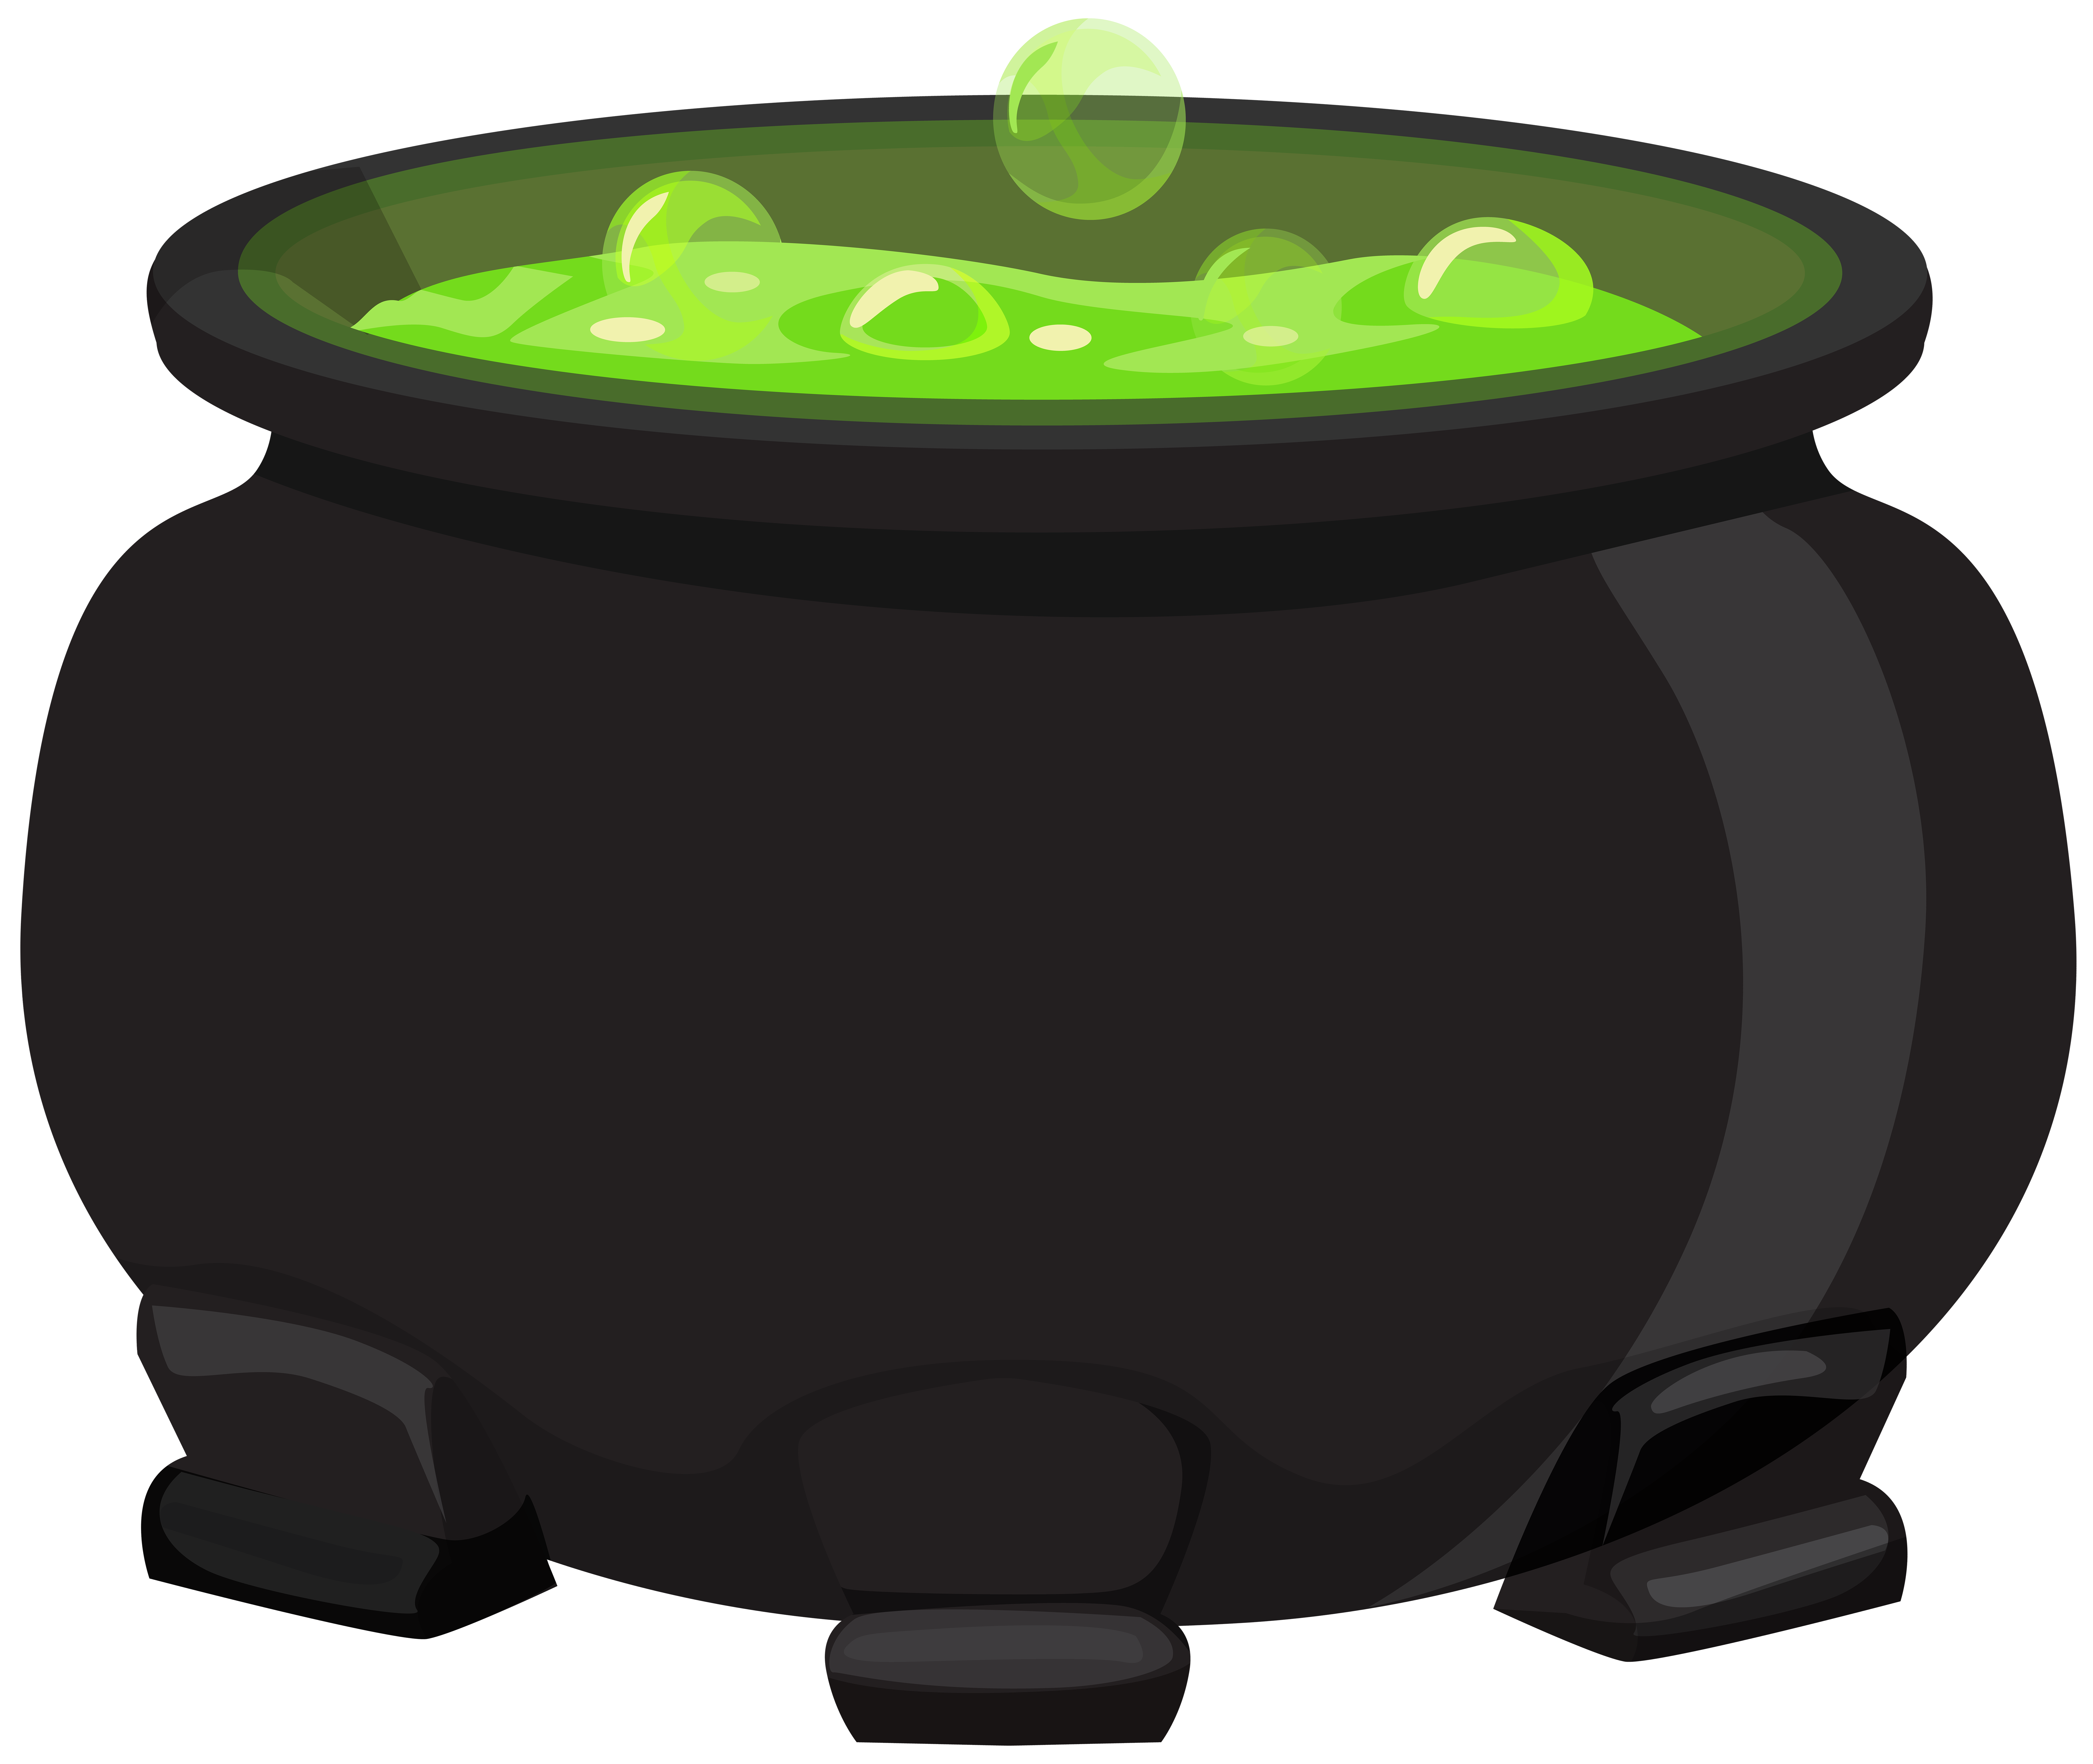 svg black and white Black cauldron clipart. Png gallery yopriceville high.